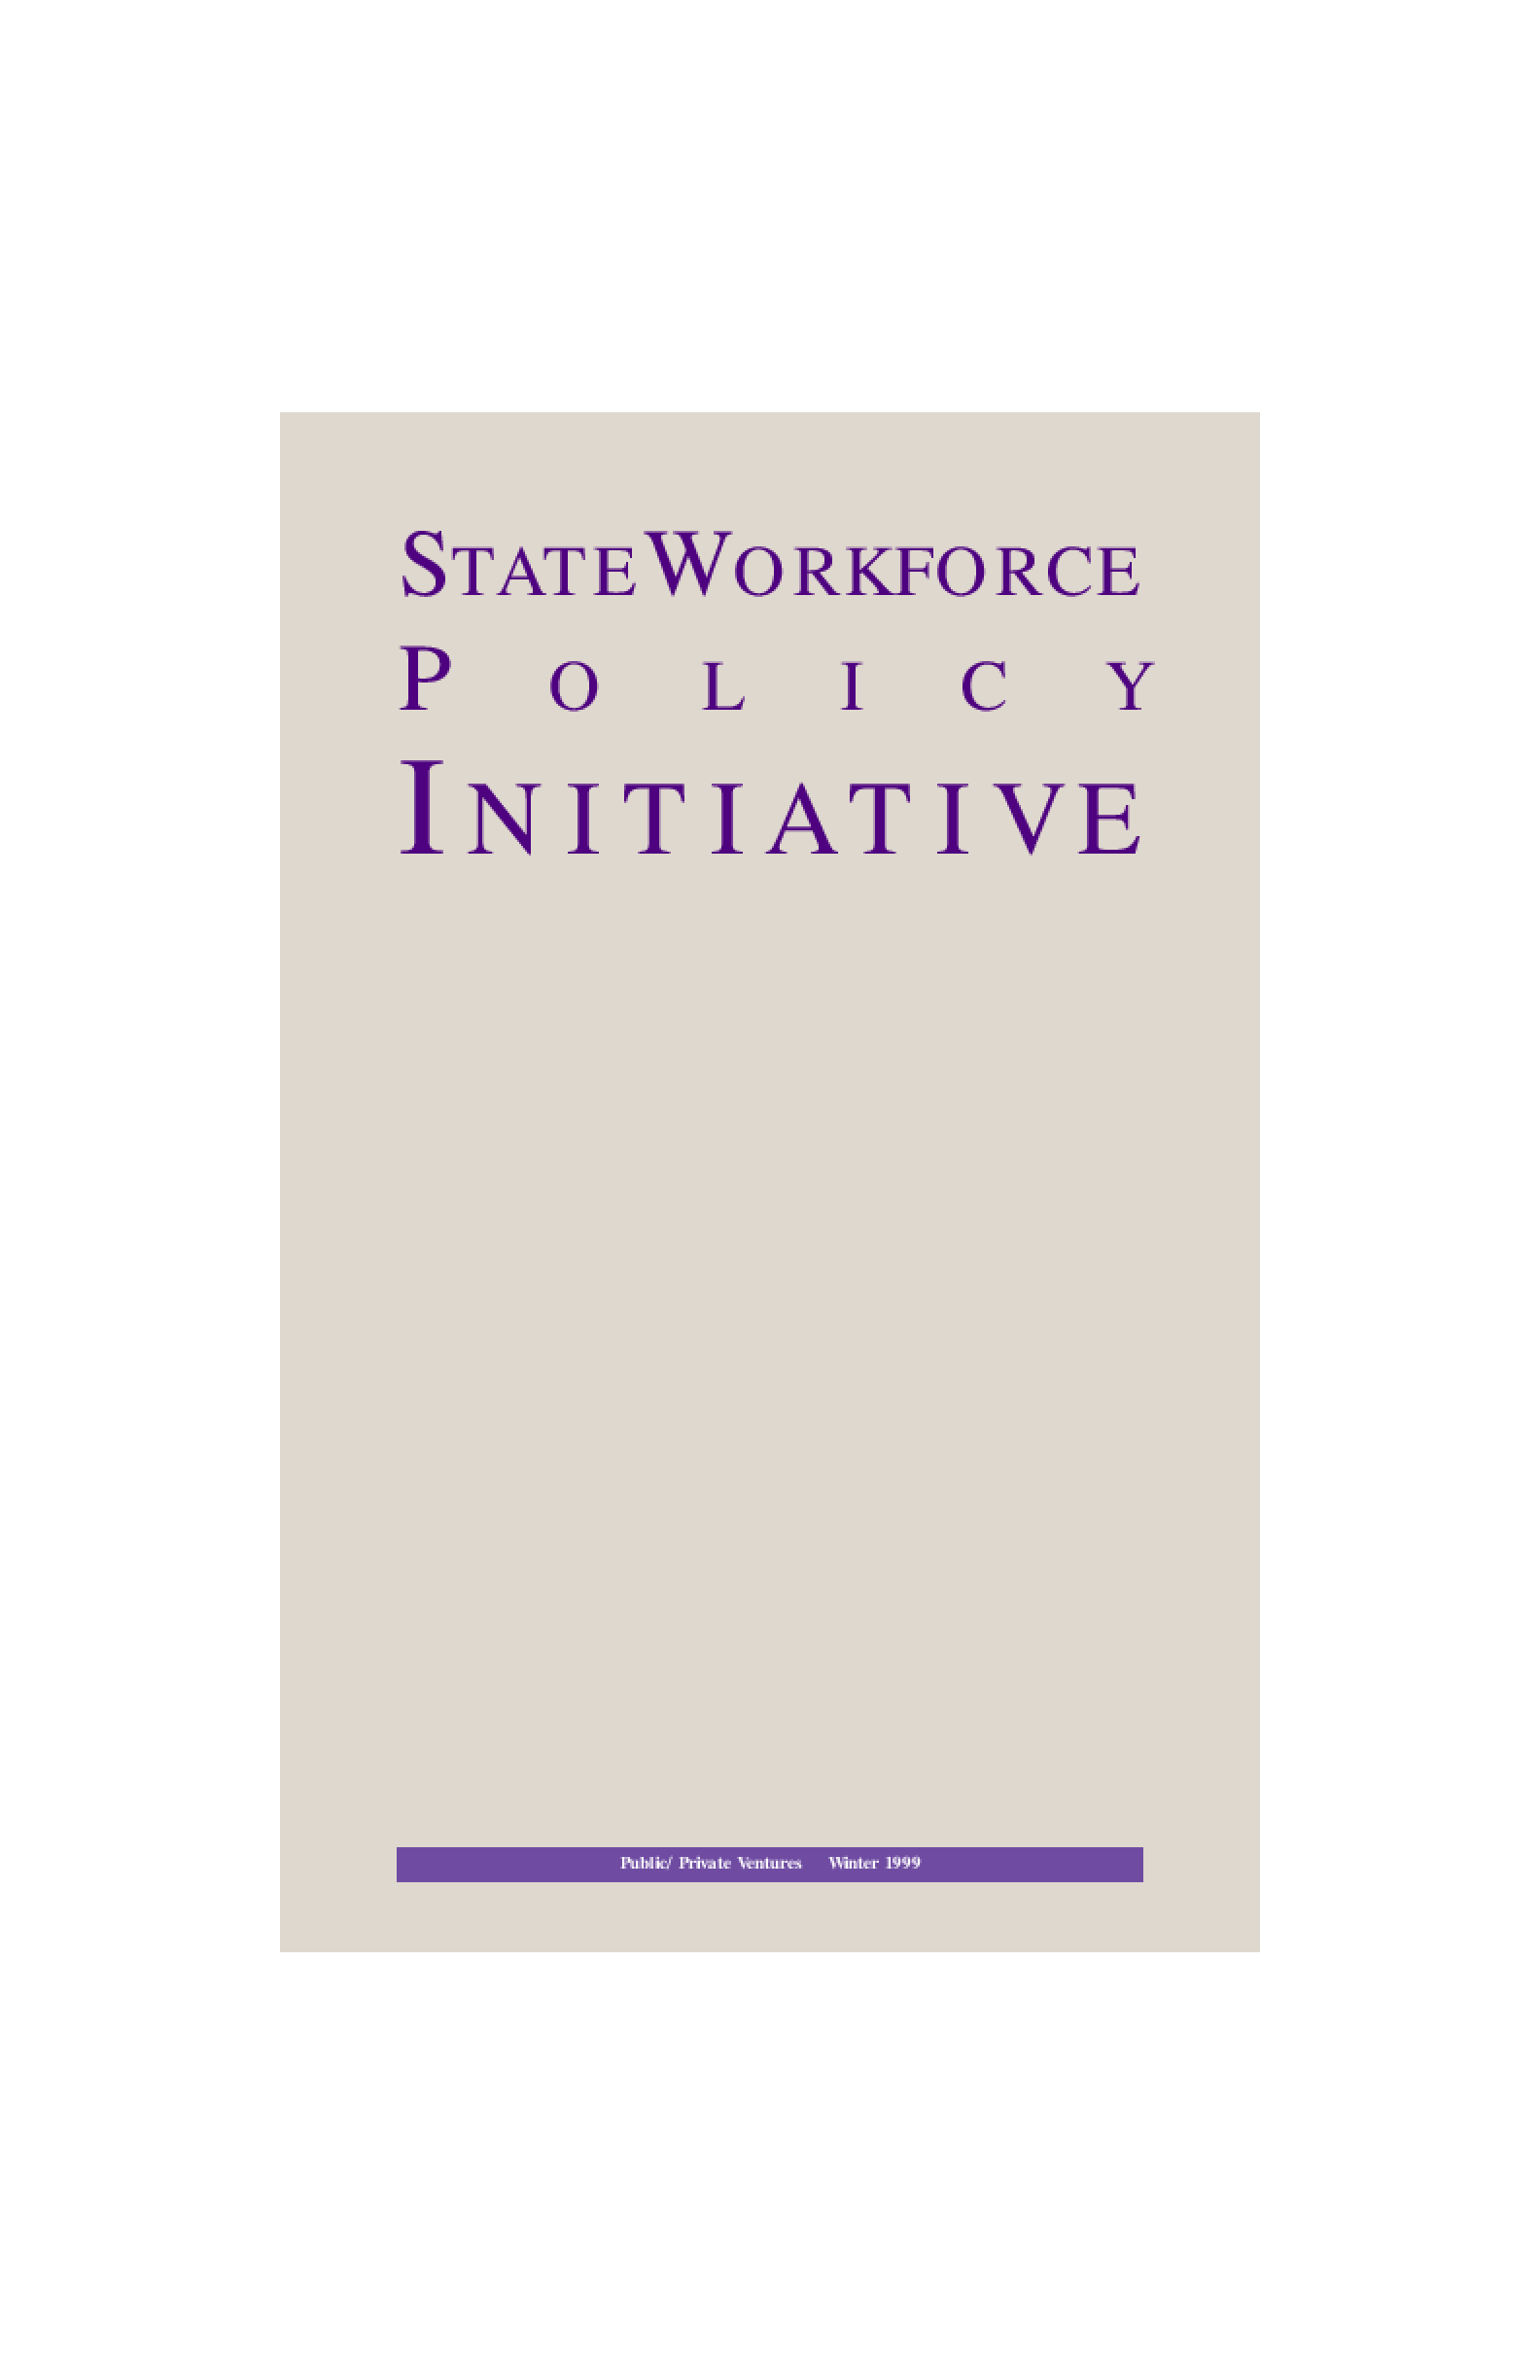 State Workforce Policy Initiative